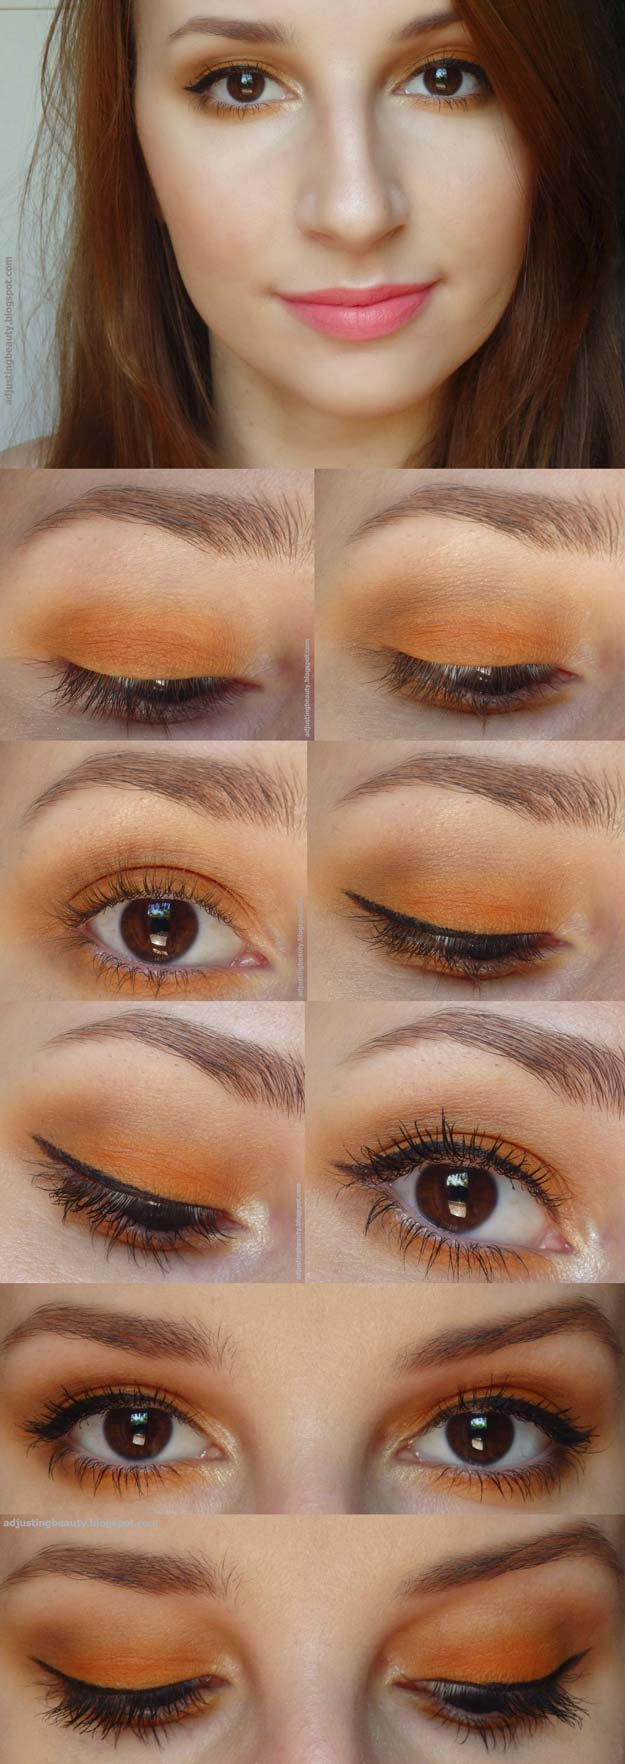 Best Eyeshadow Tutorials - Orange Eye Makeup - Easy Step by Step How To For Eye Shadow - Cool Makeup Tricks and Eye Makeup Tutorial With Instructions - Quick Ways to Do Smoky Eye, Natural Makeup, Looks for Day and Evening, Brown and Blue Eyes - Cool Ideas for Beginners and Teens